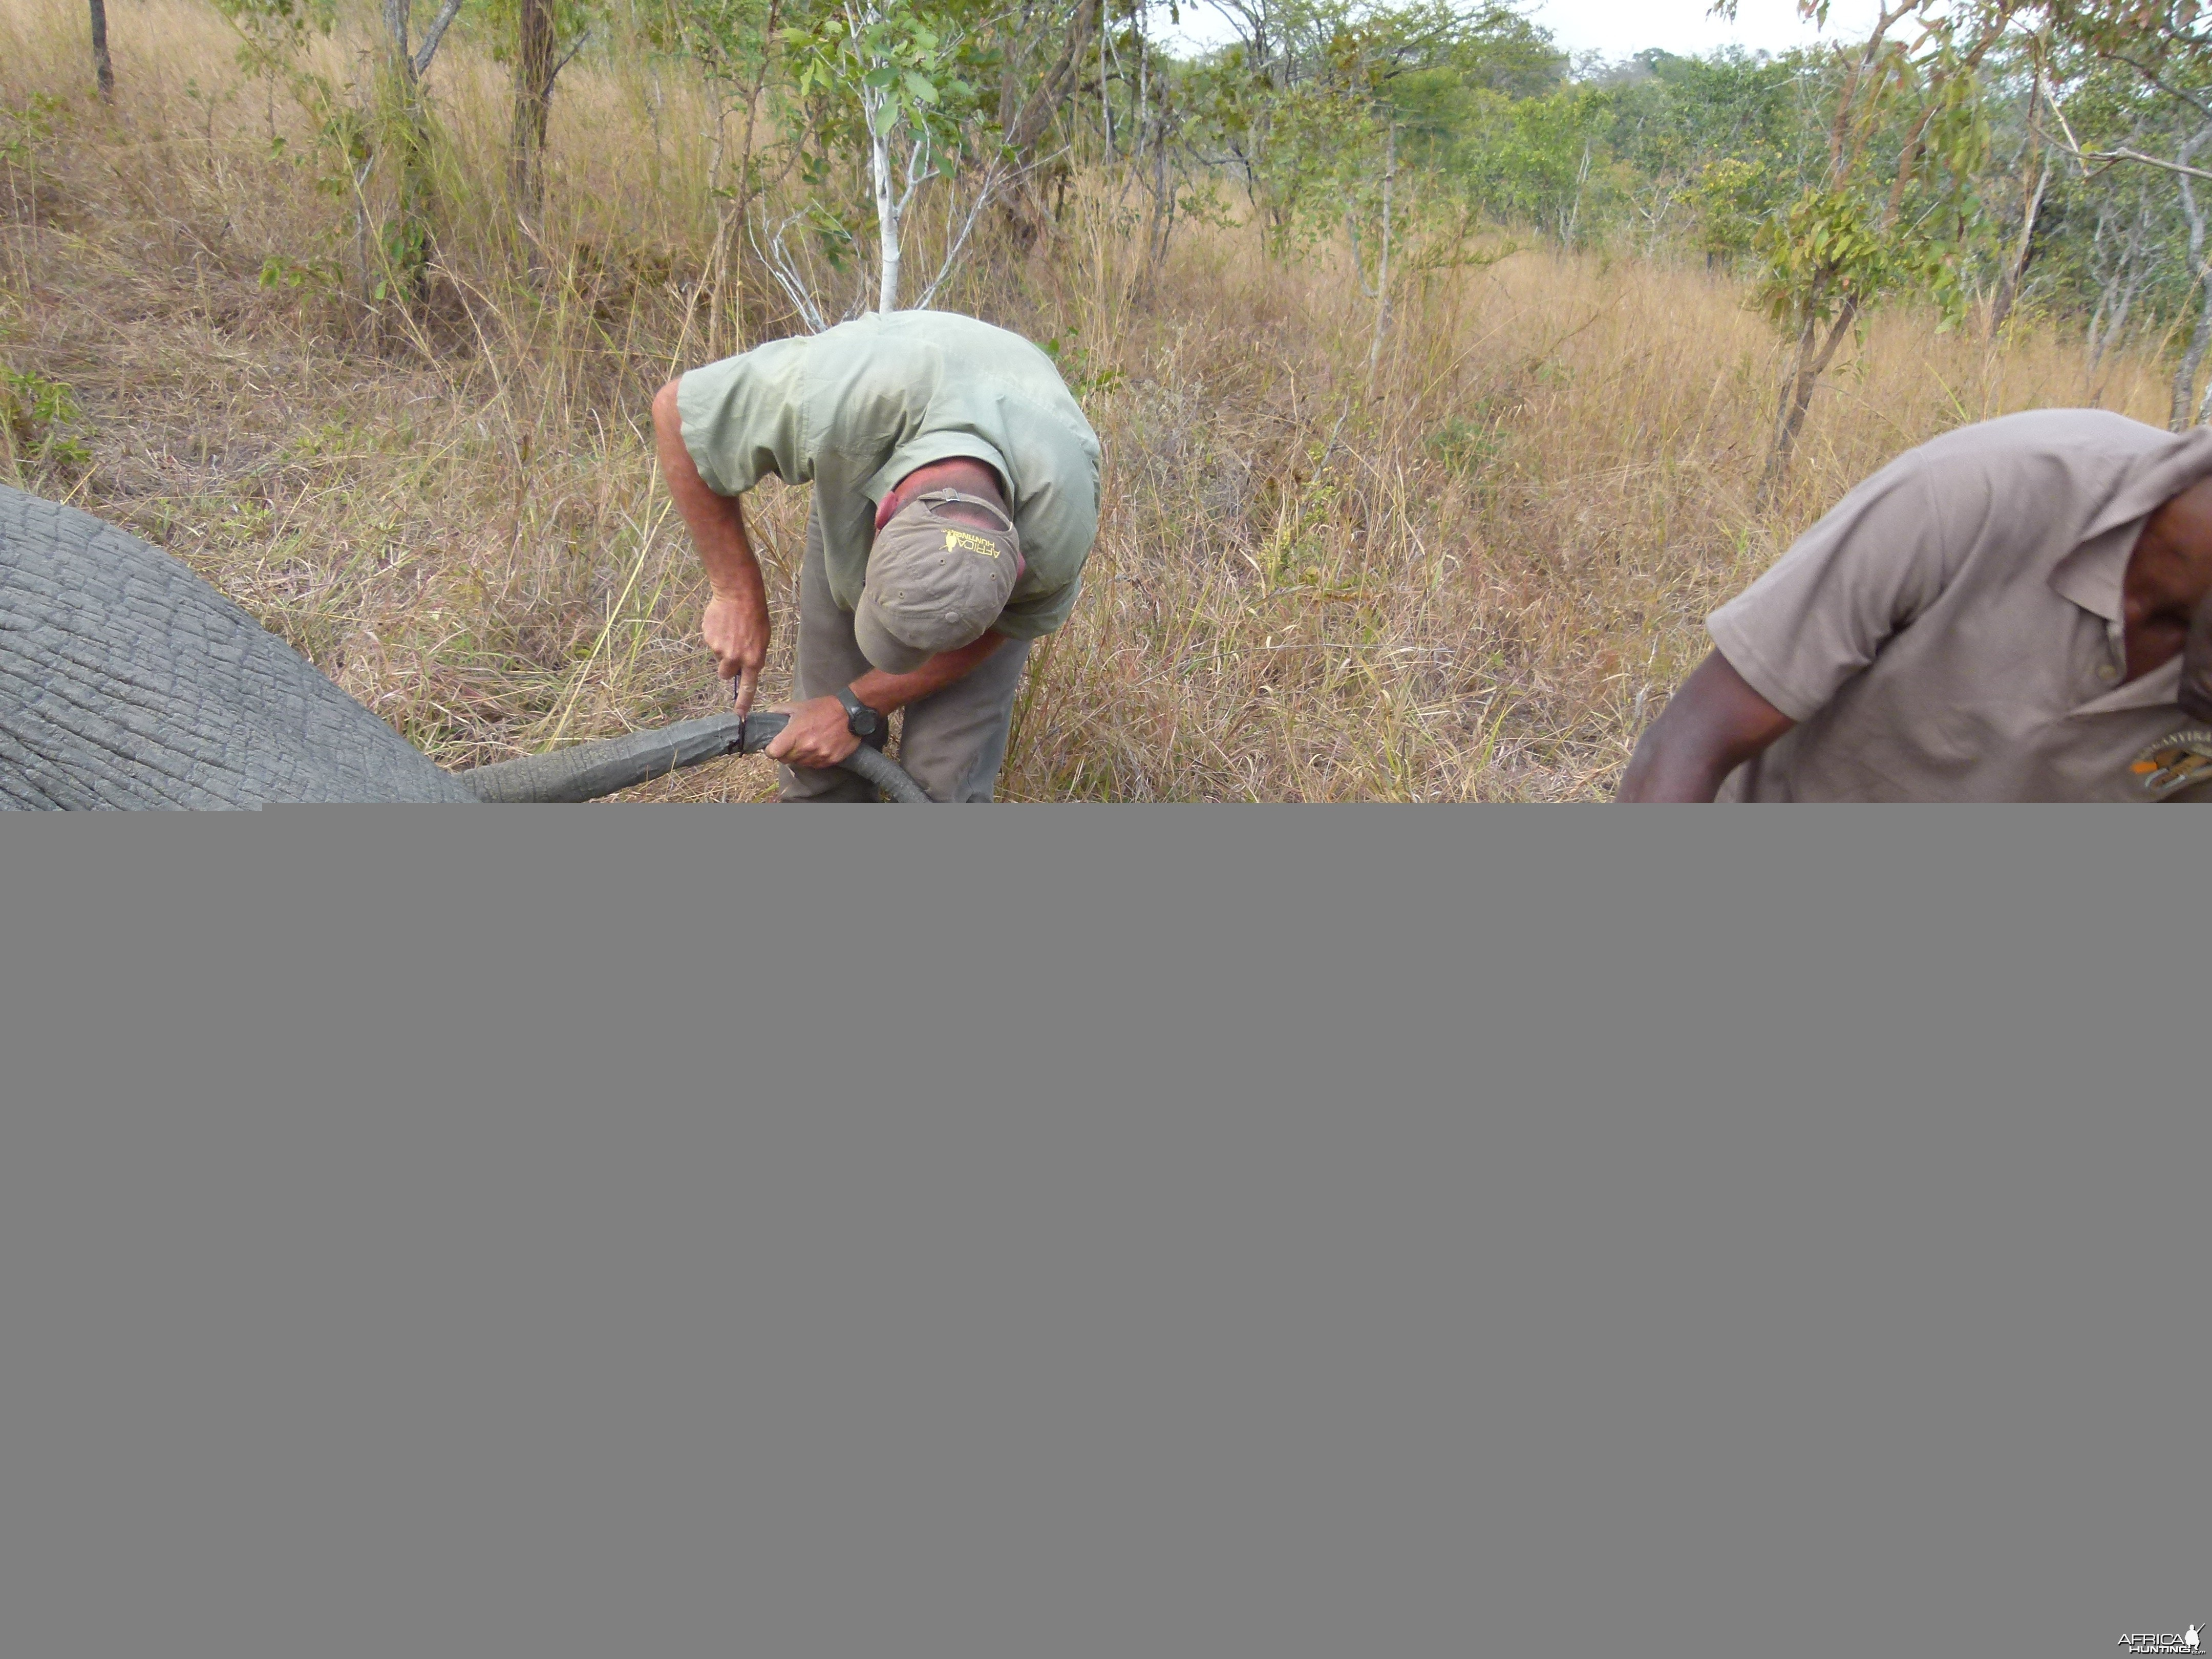 Skinning the Elephant... a big job